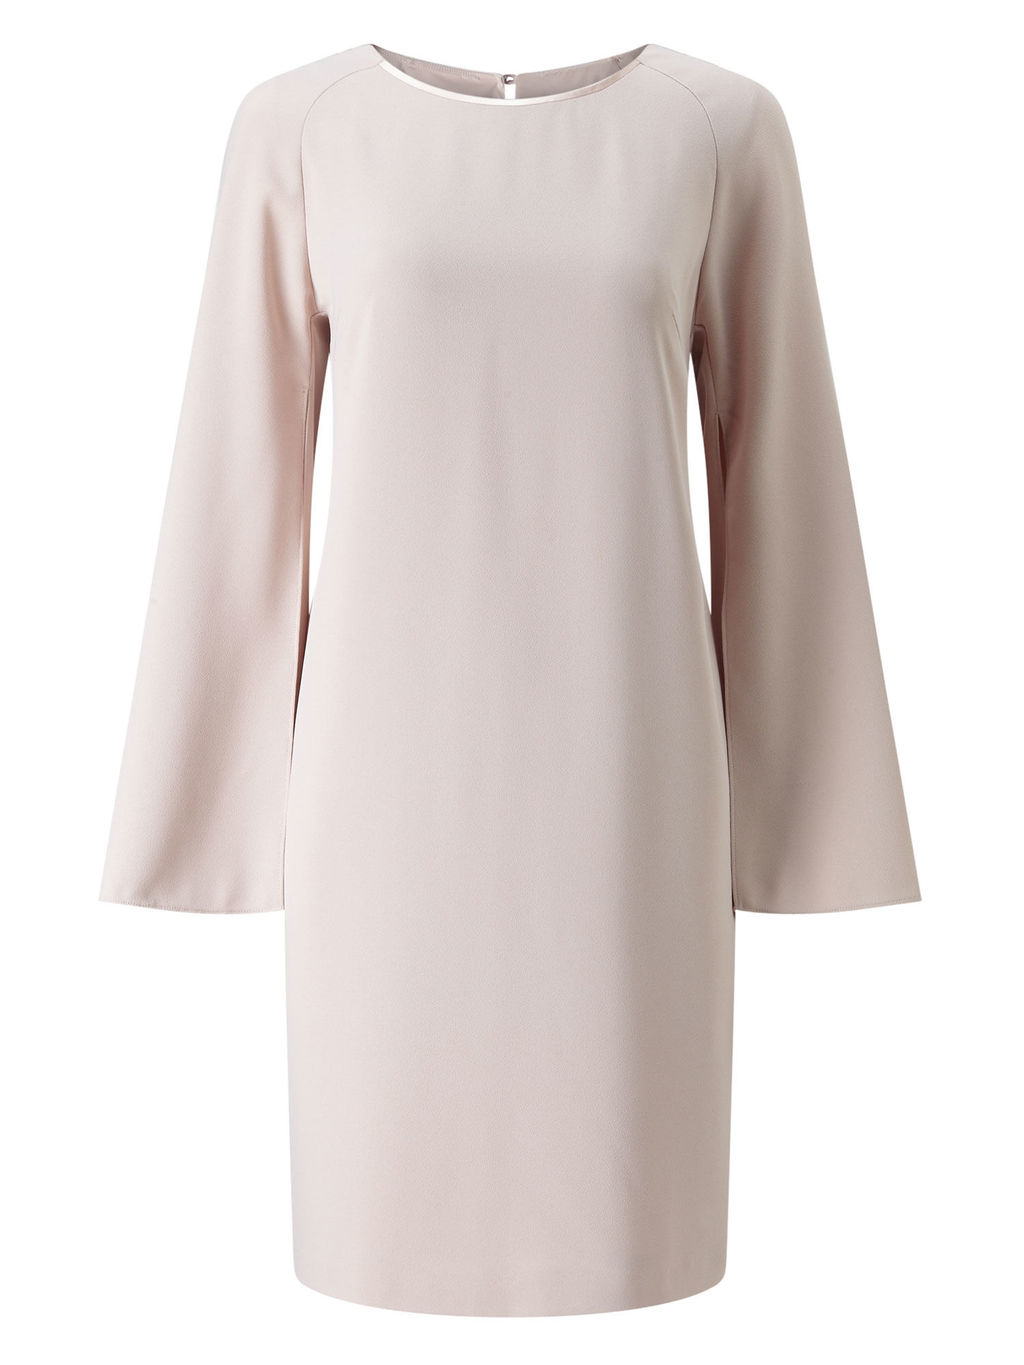 Split Sleeve Tunic - neckline: round neck; sleeve style: bell sleeve; pattern: plain; style: tunic; predominant colour: ivory/cream; fibres: polyester/polyamide - 100%; occasions: occasion; fit: body skimming; length: mid thigh; sleeve length: long sleeve; texture group: crepes; pattern type: fabric; season: s/s 2016; wardrobe: event